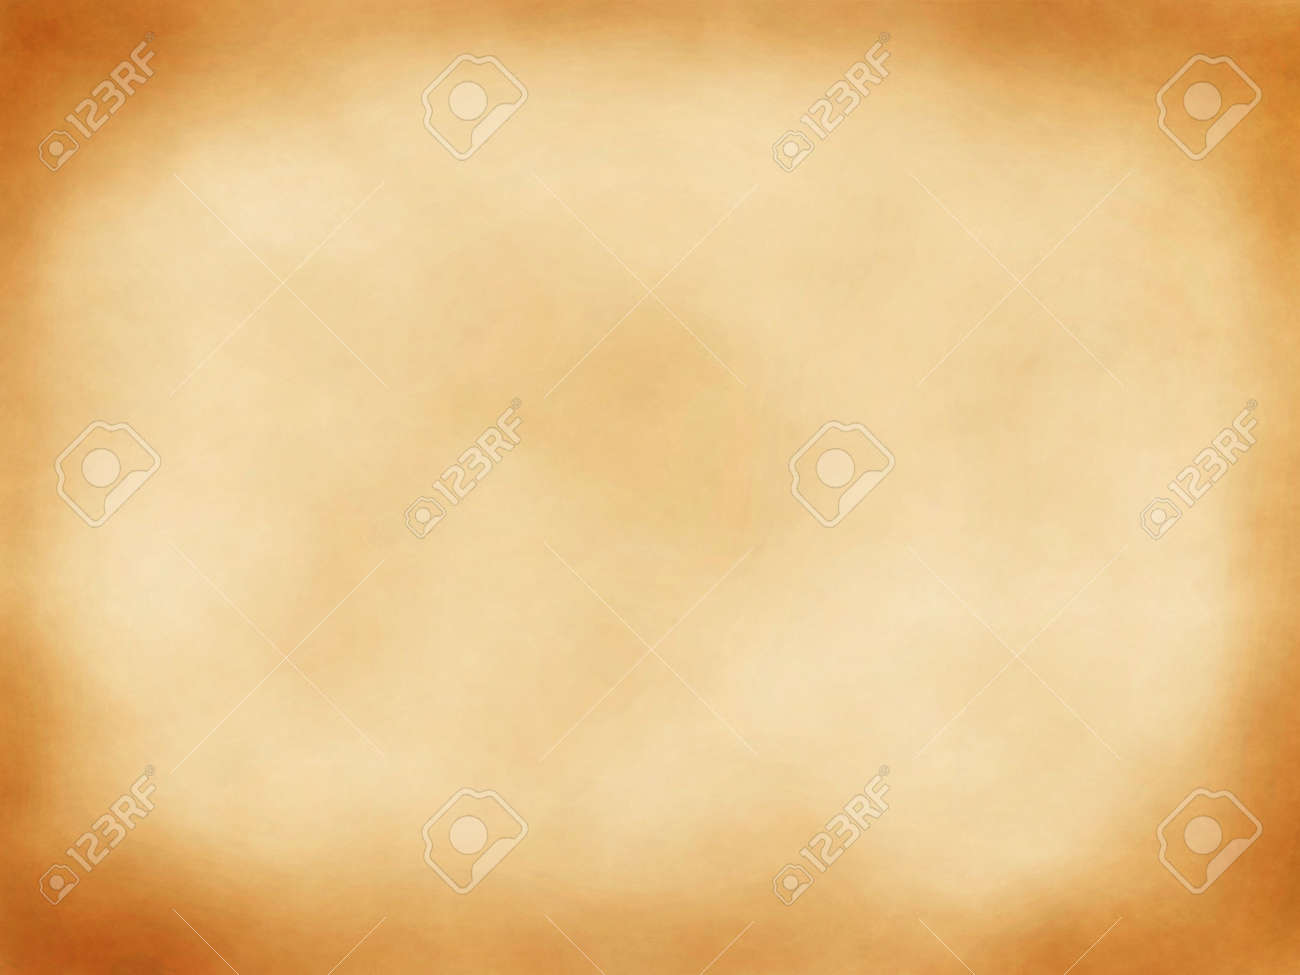 Old texture vintage paper with space for text or image Stock Photo - 5647776